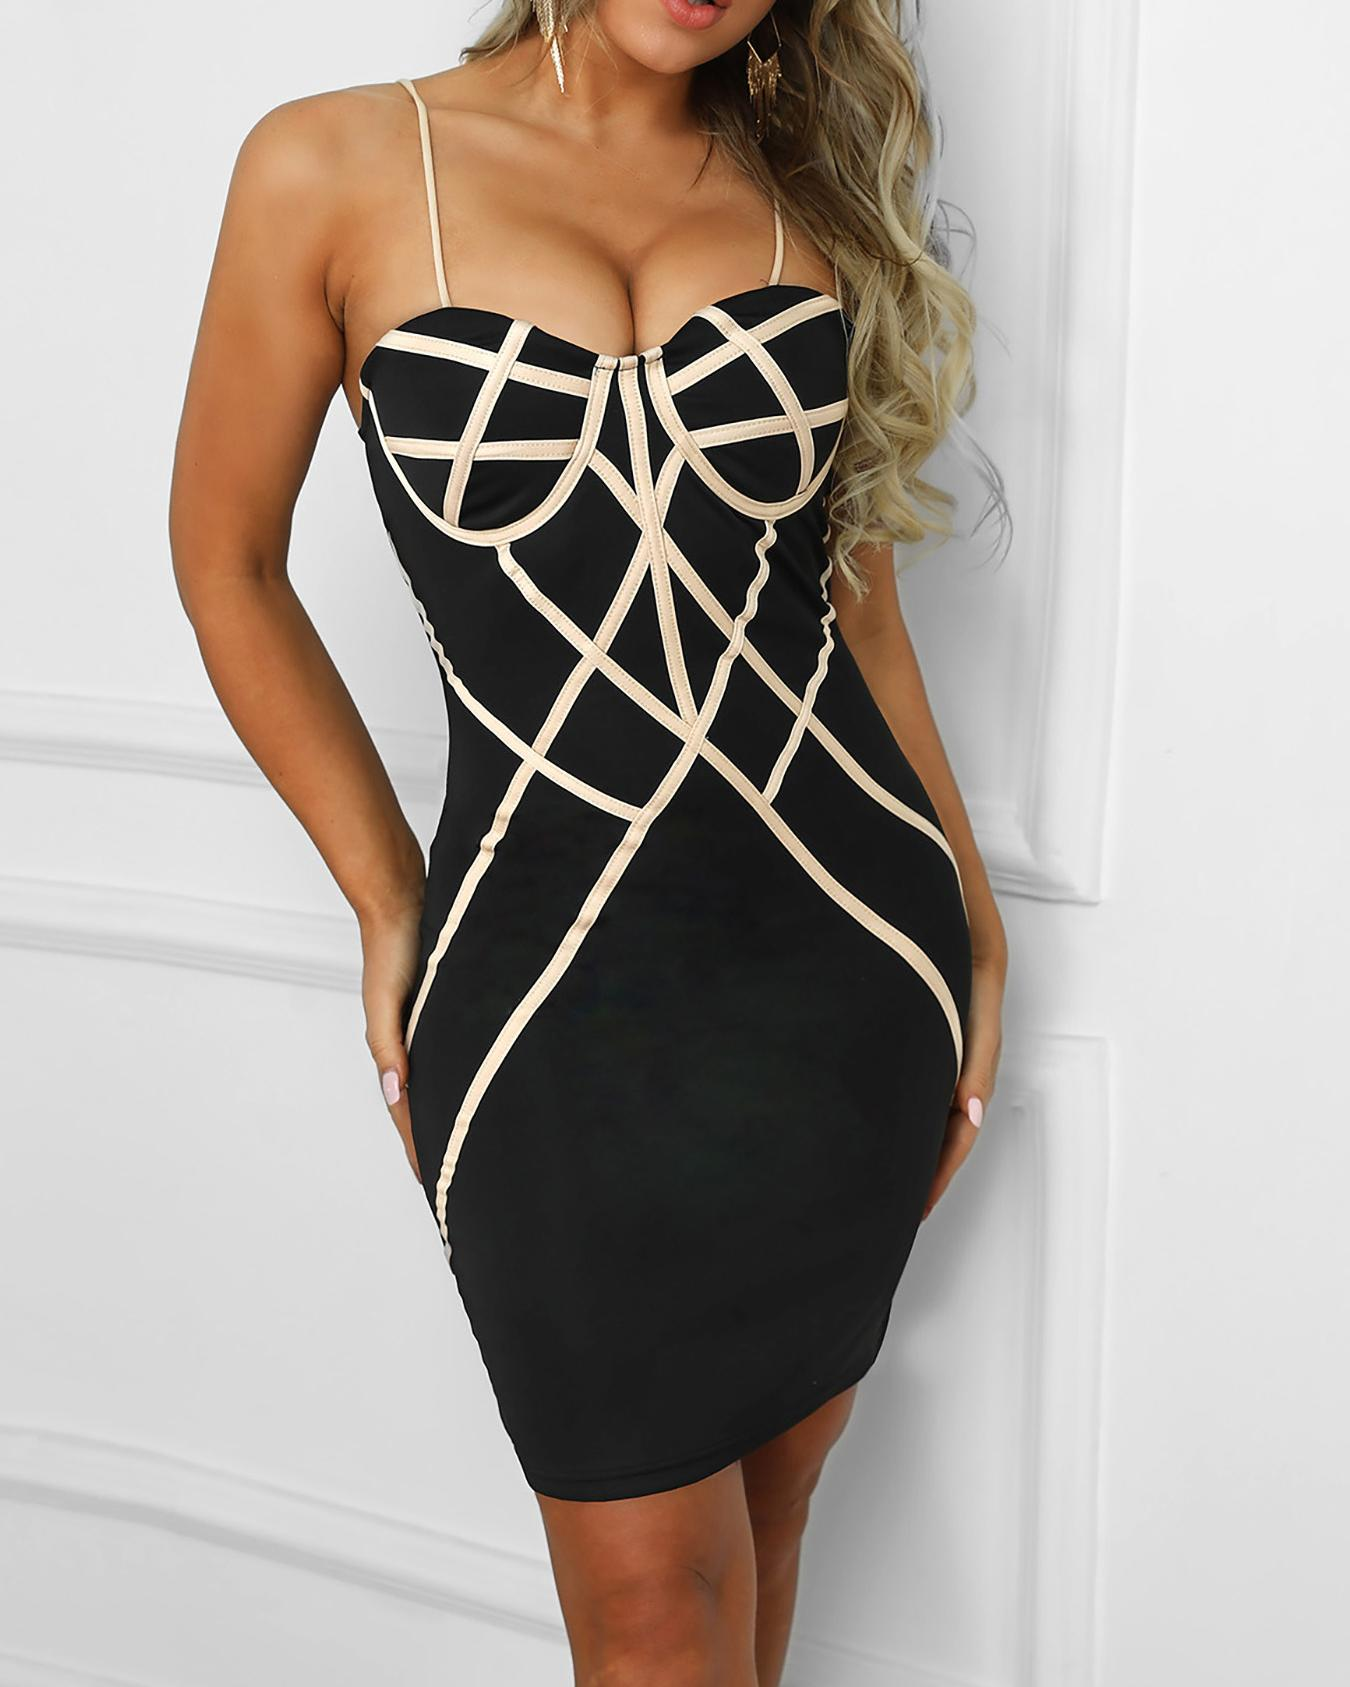 Reflective-Striped Spaghetti Strap Bodycon Dress фото